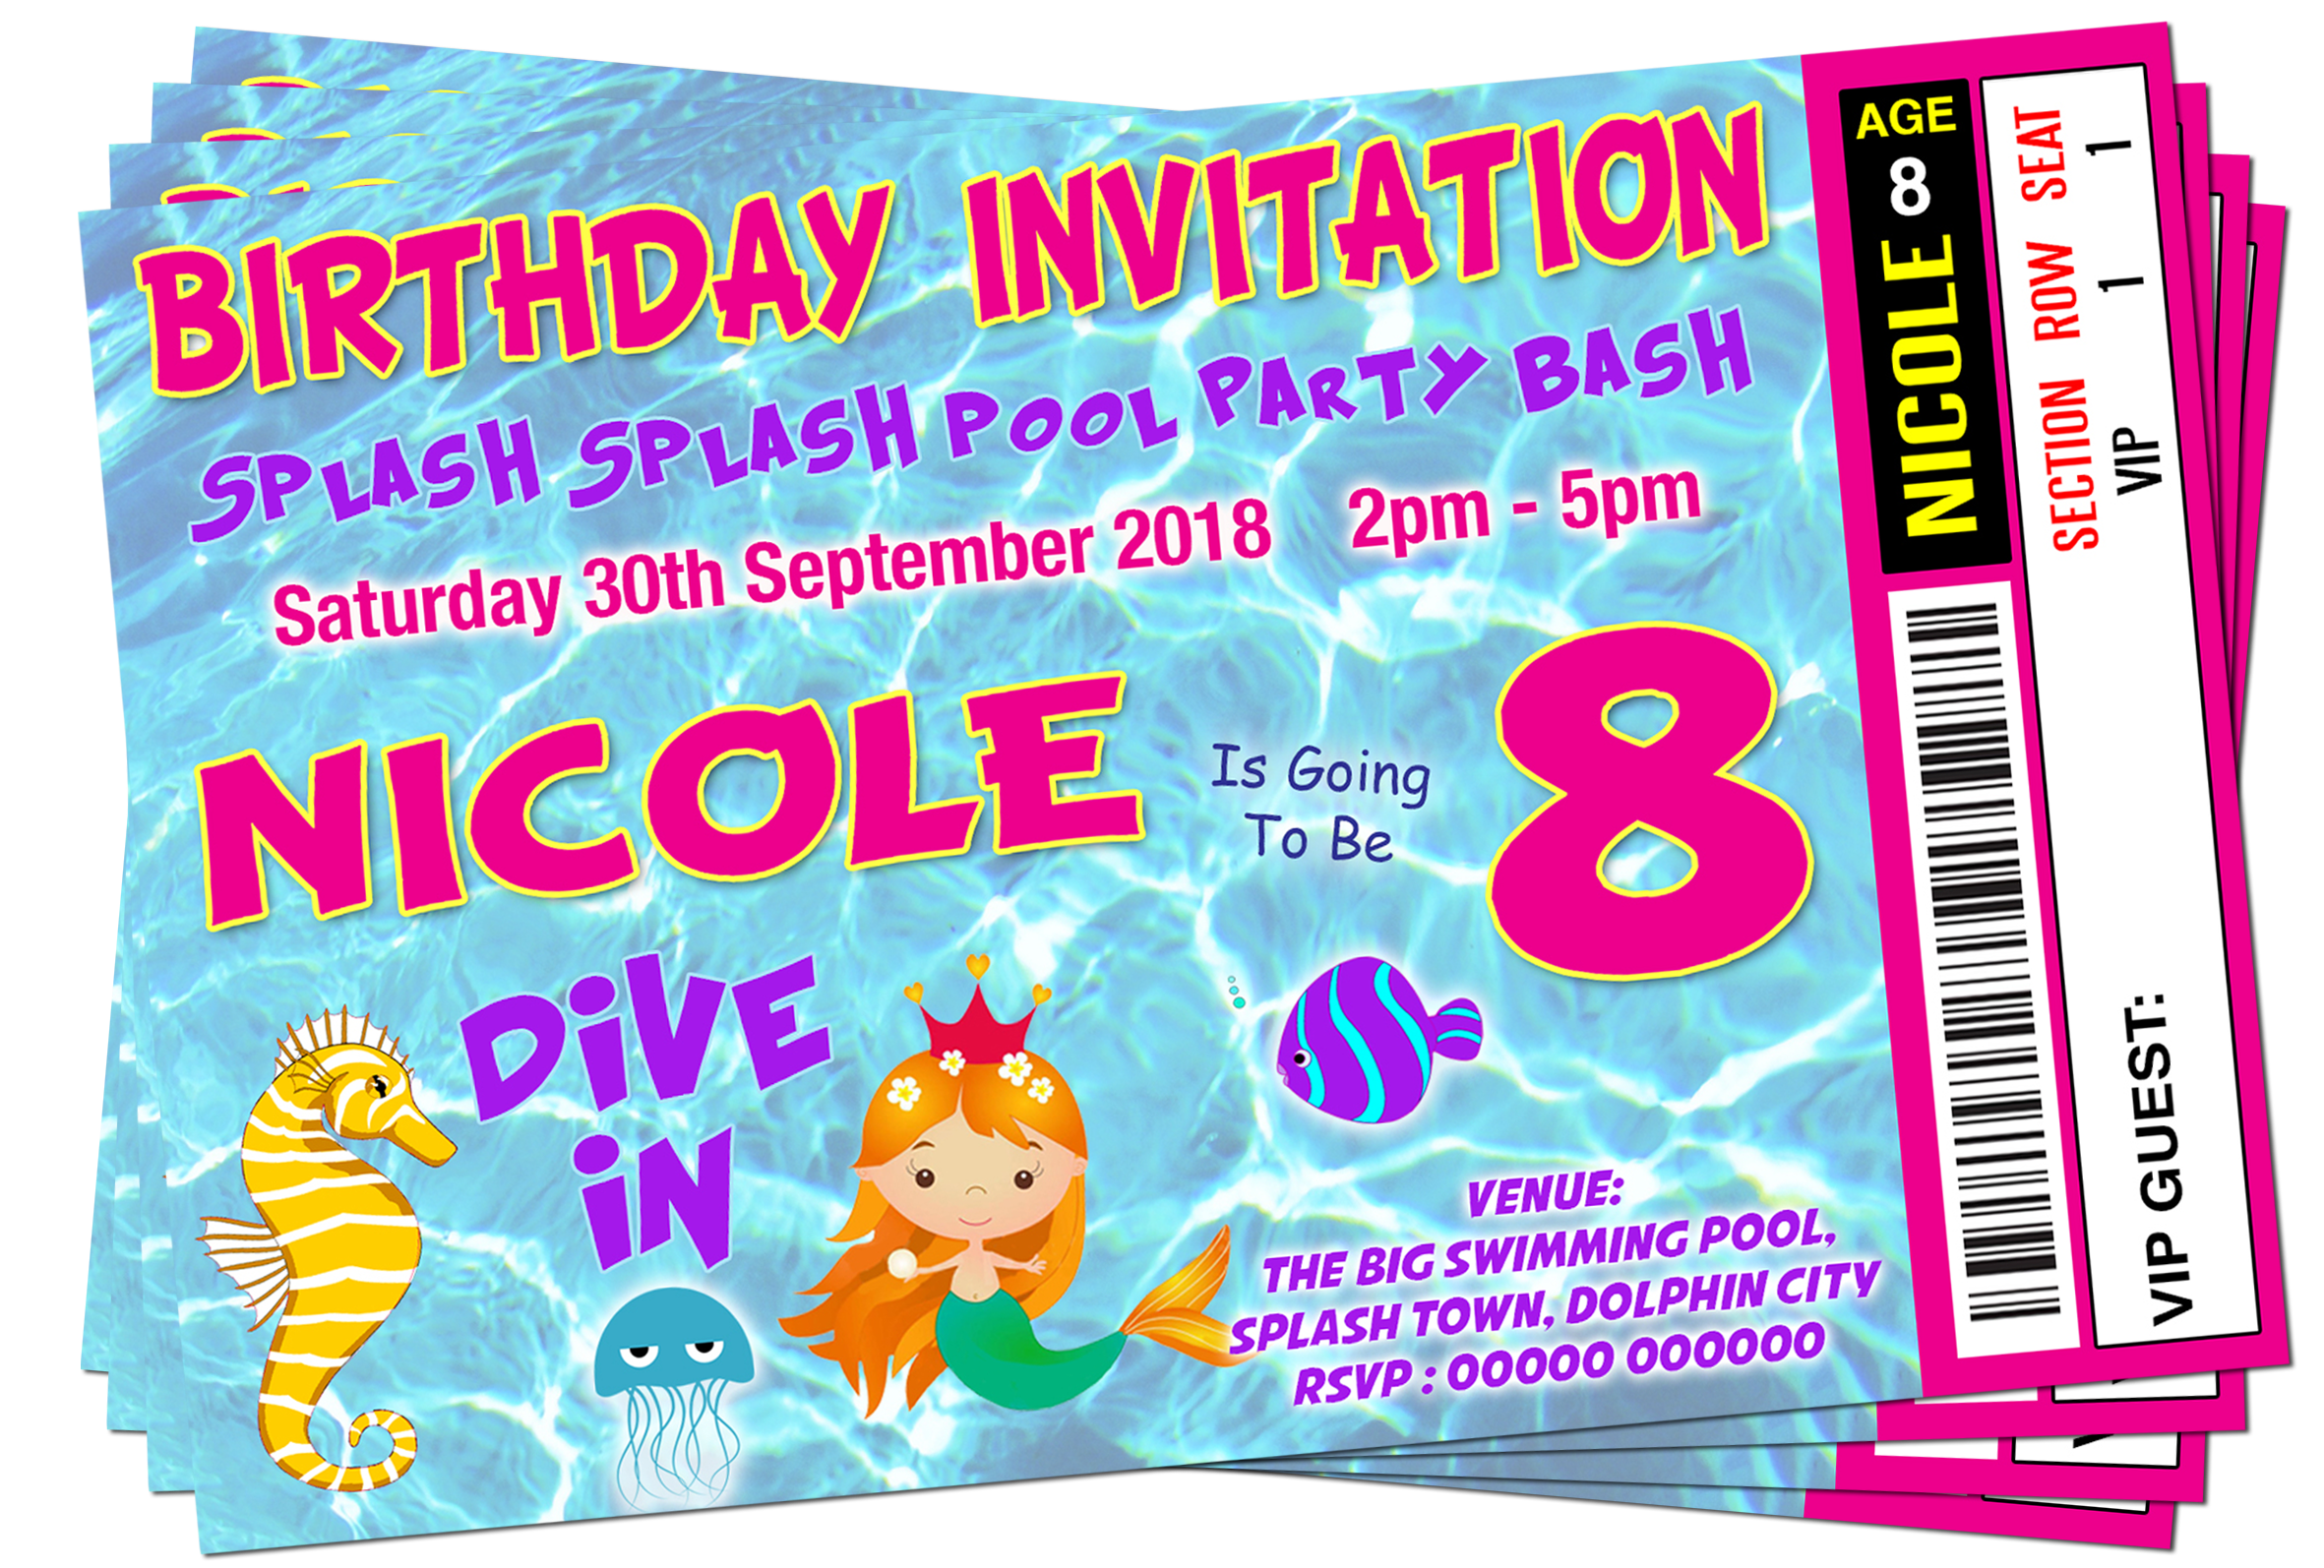 Pool party invitation png. Swim mermaid ticket style